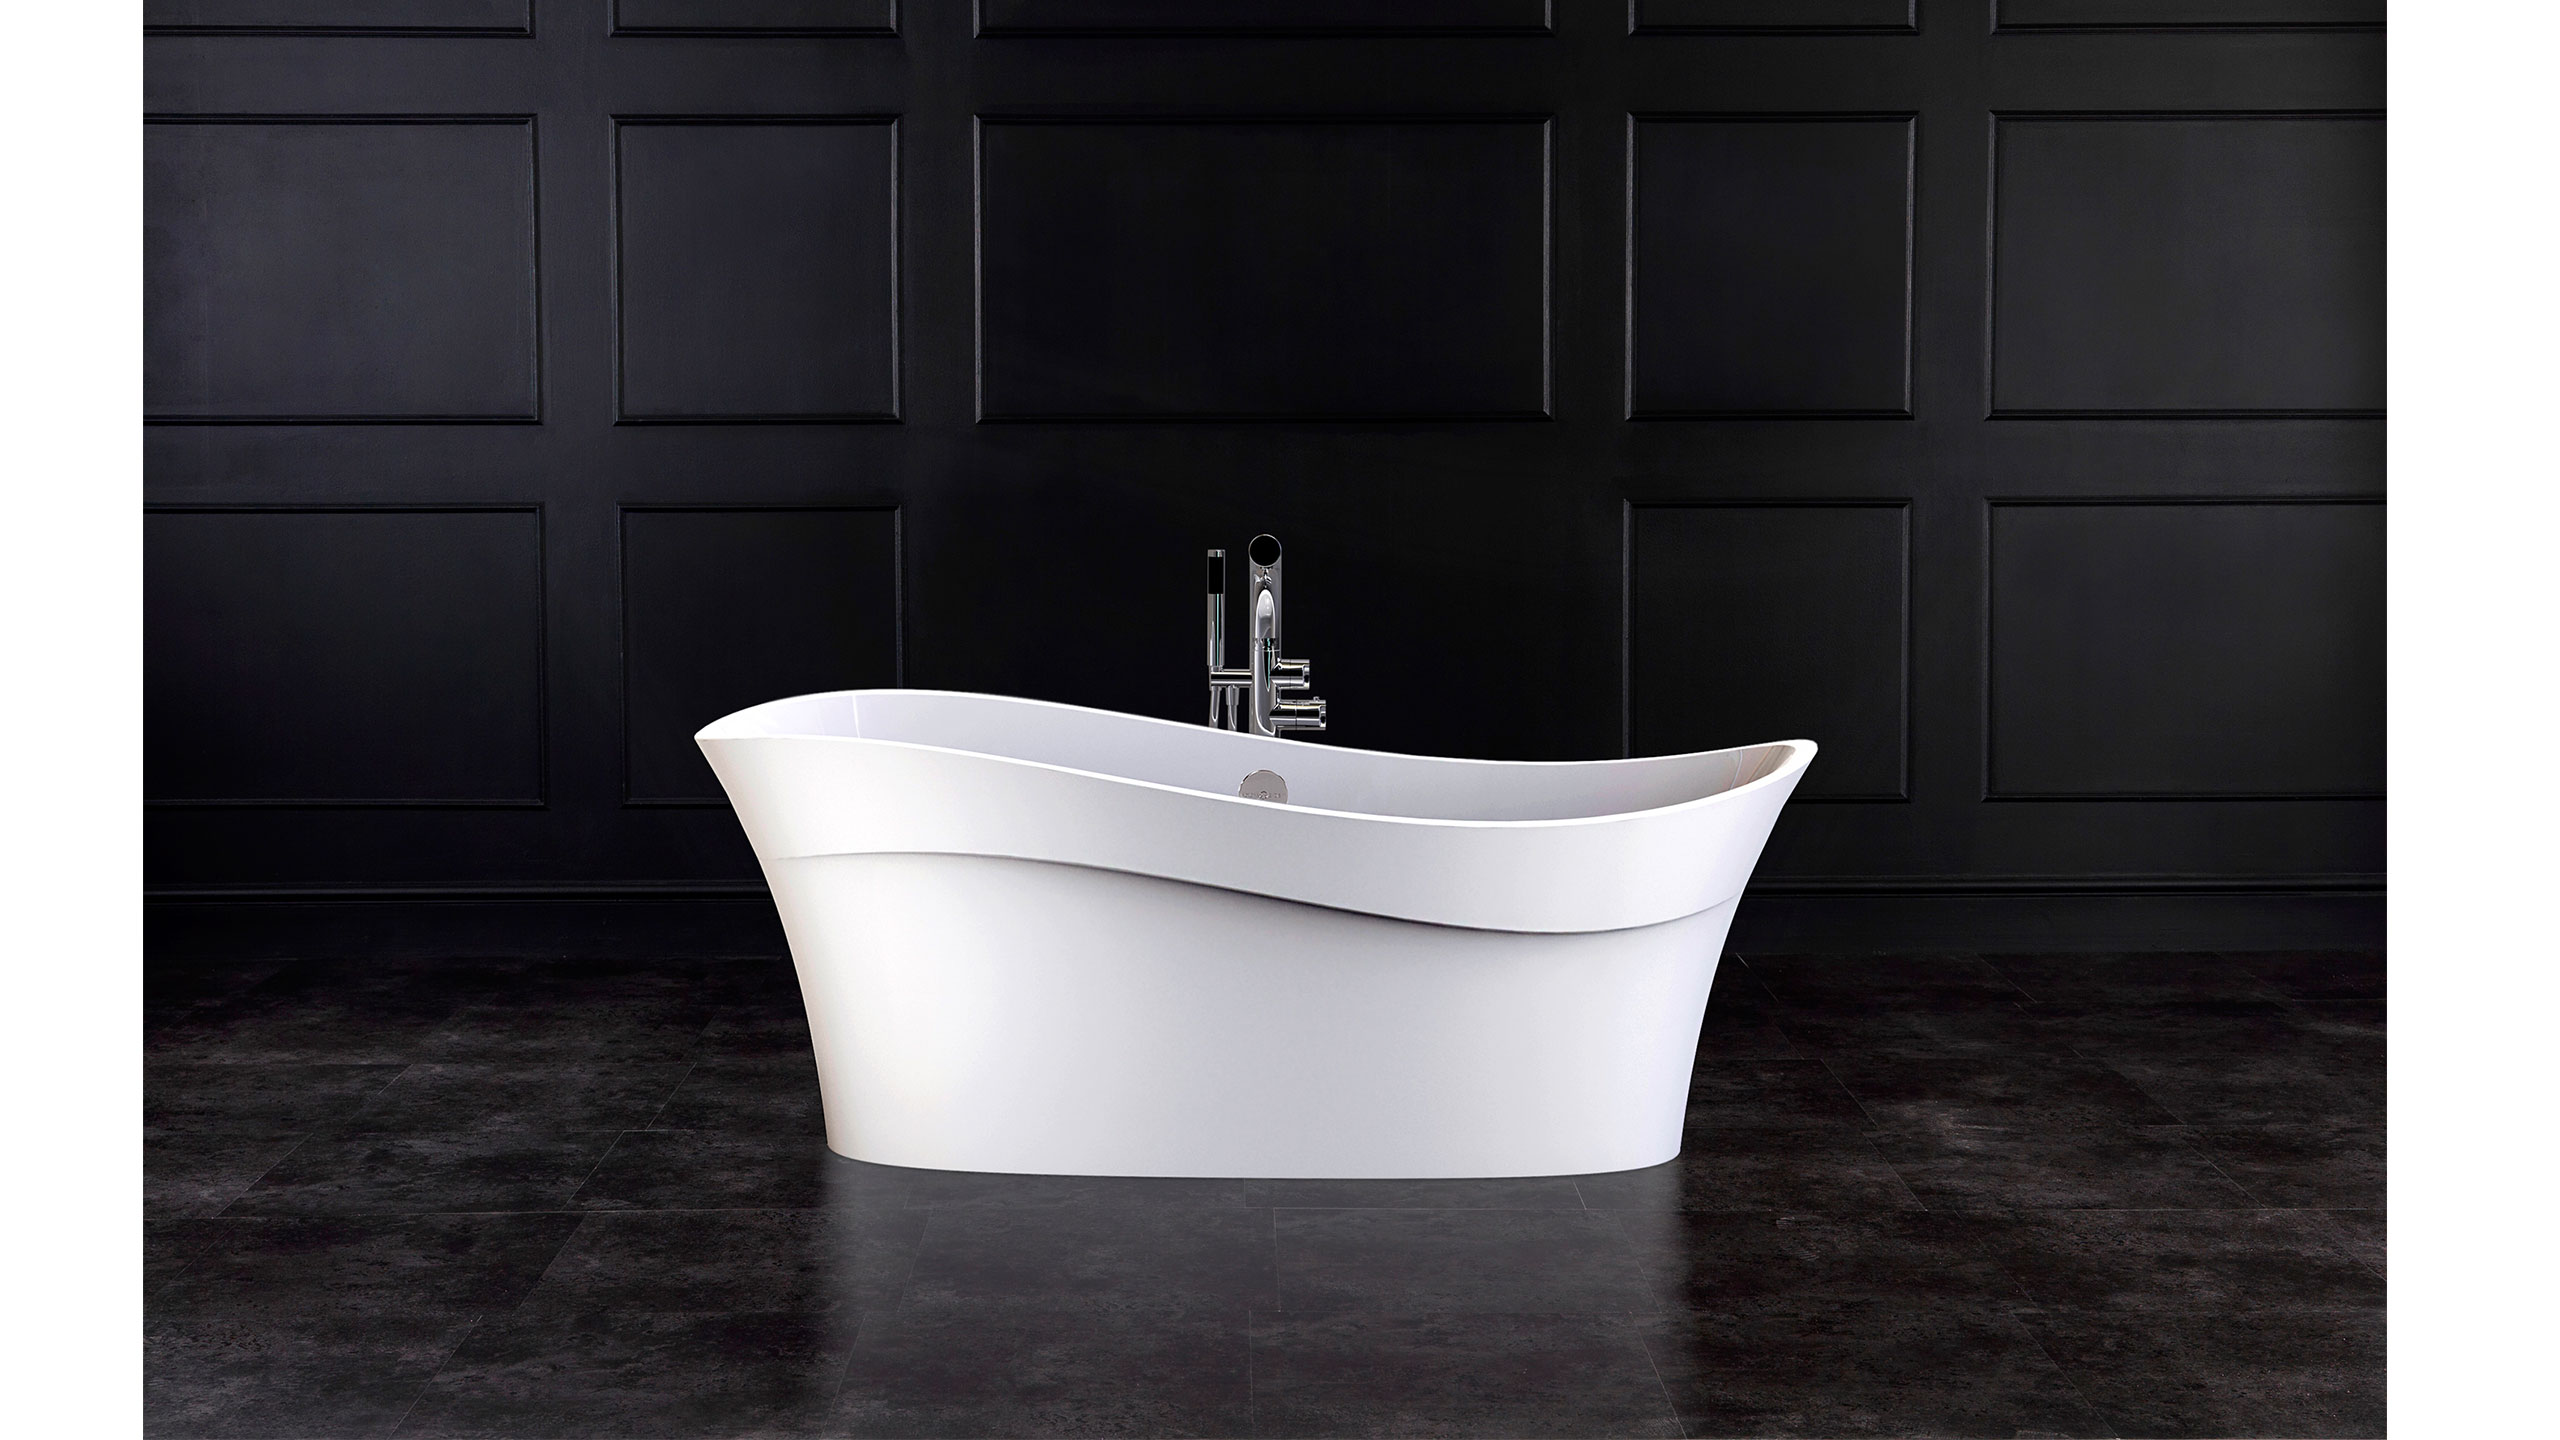 https://designerpages.s3.amazonaws.com/assets/60998341/Pescadero-bath-black-panel-US-.jpg